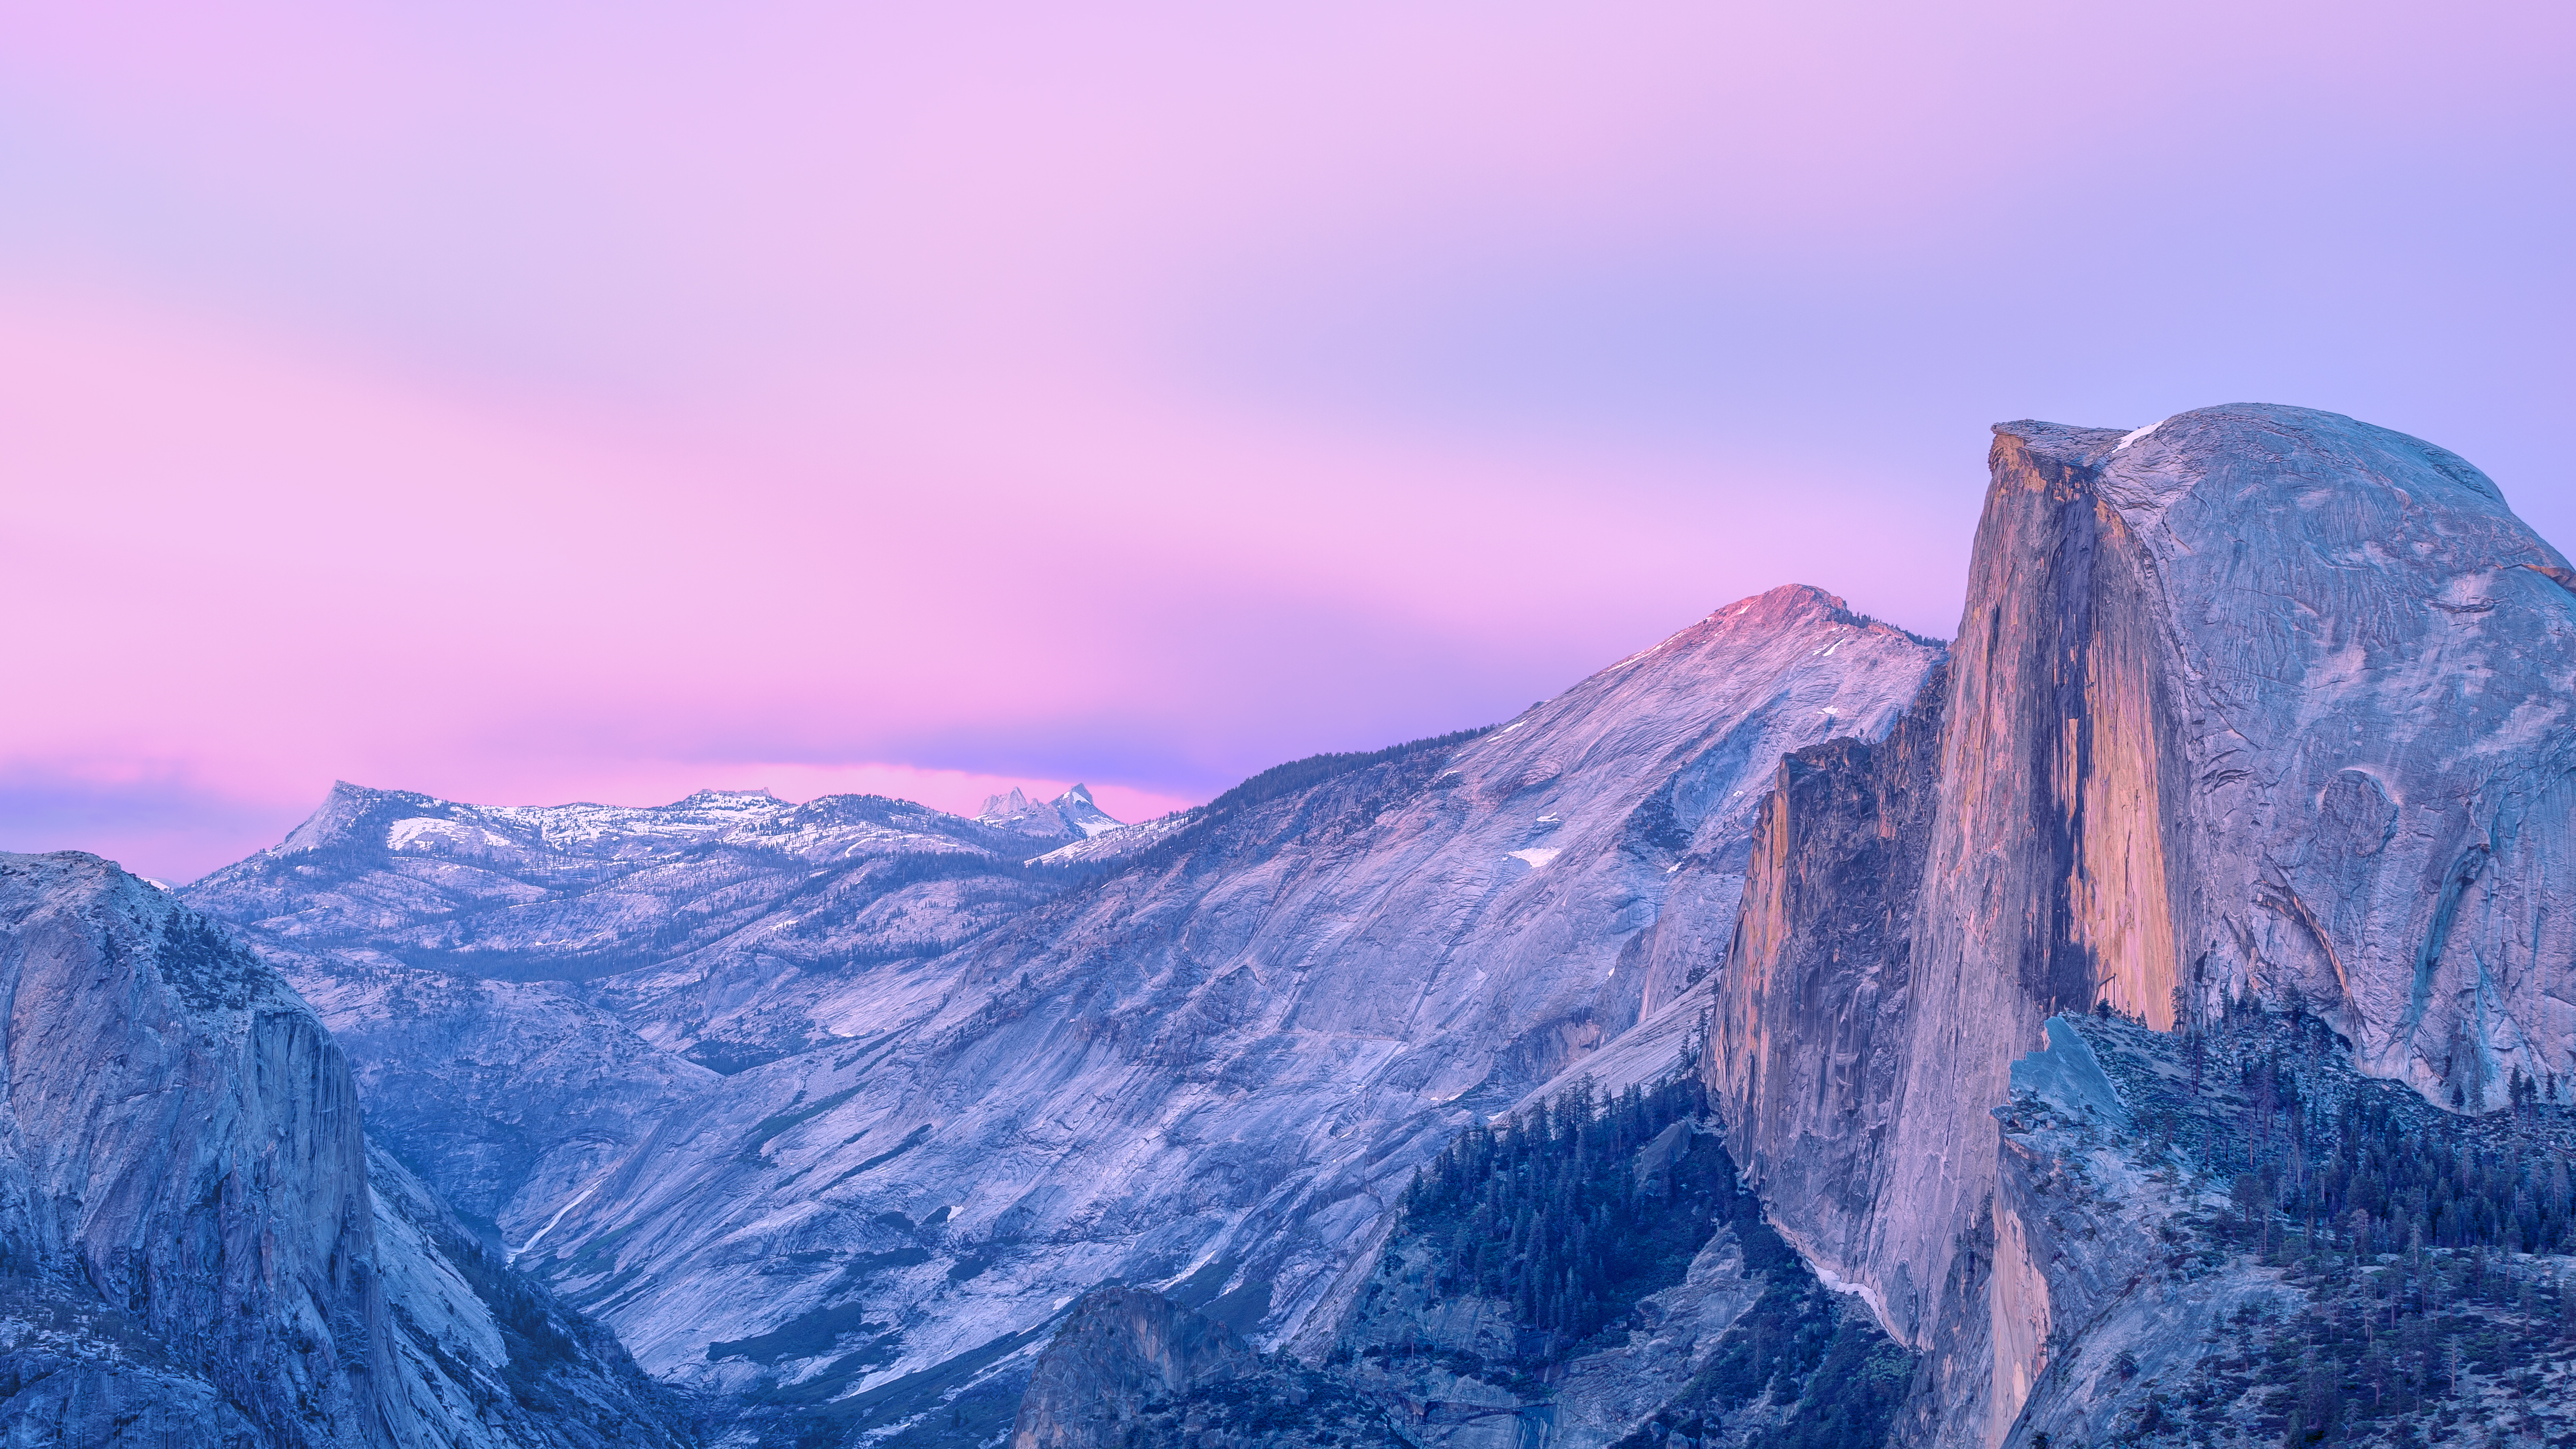 OS X Yosemite wallpapers are here and theyre beautiful   SlashGear 4832x2718